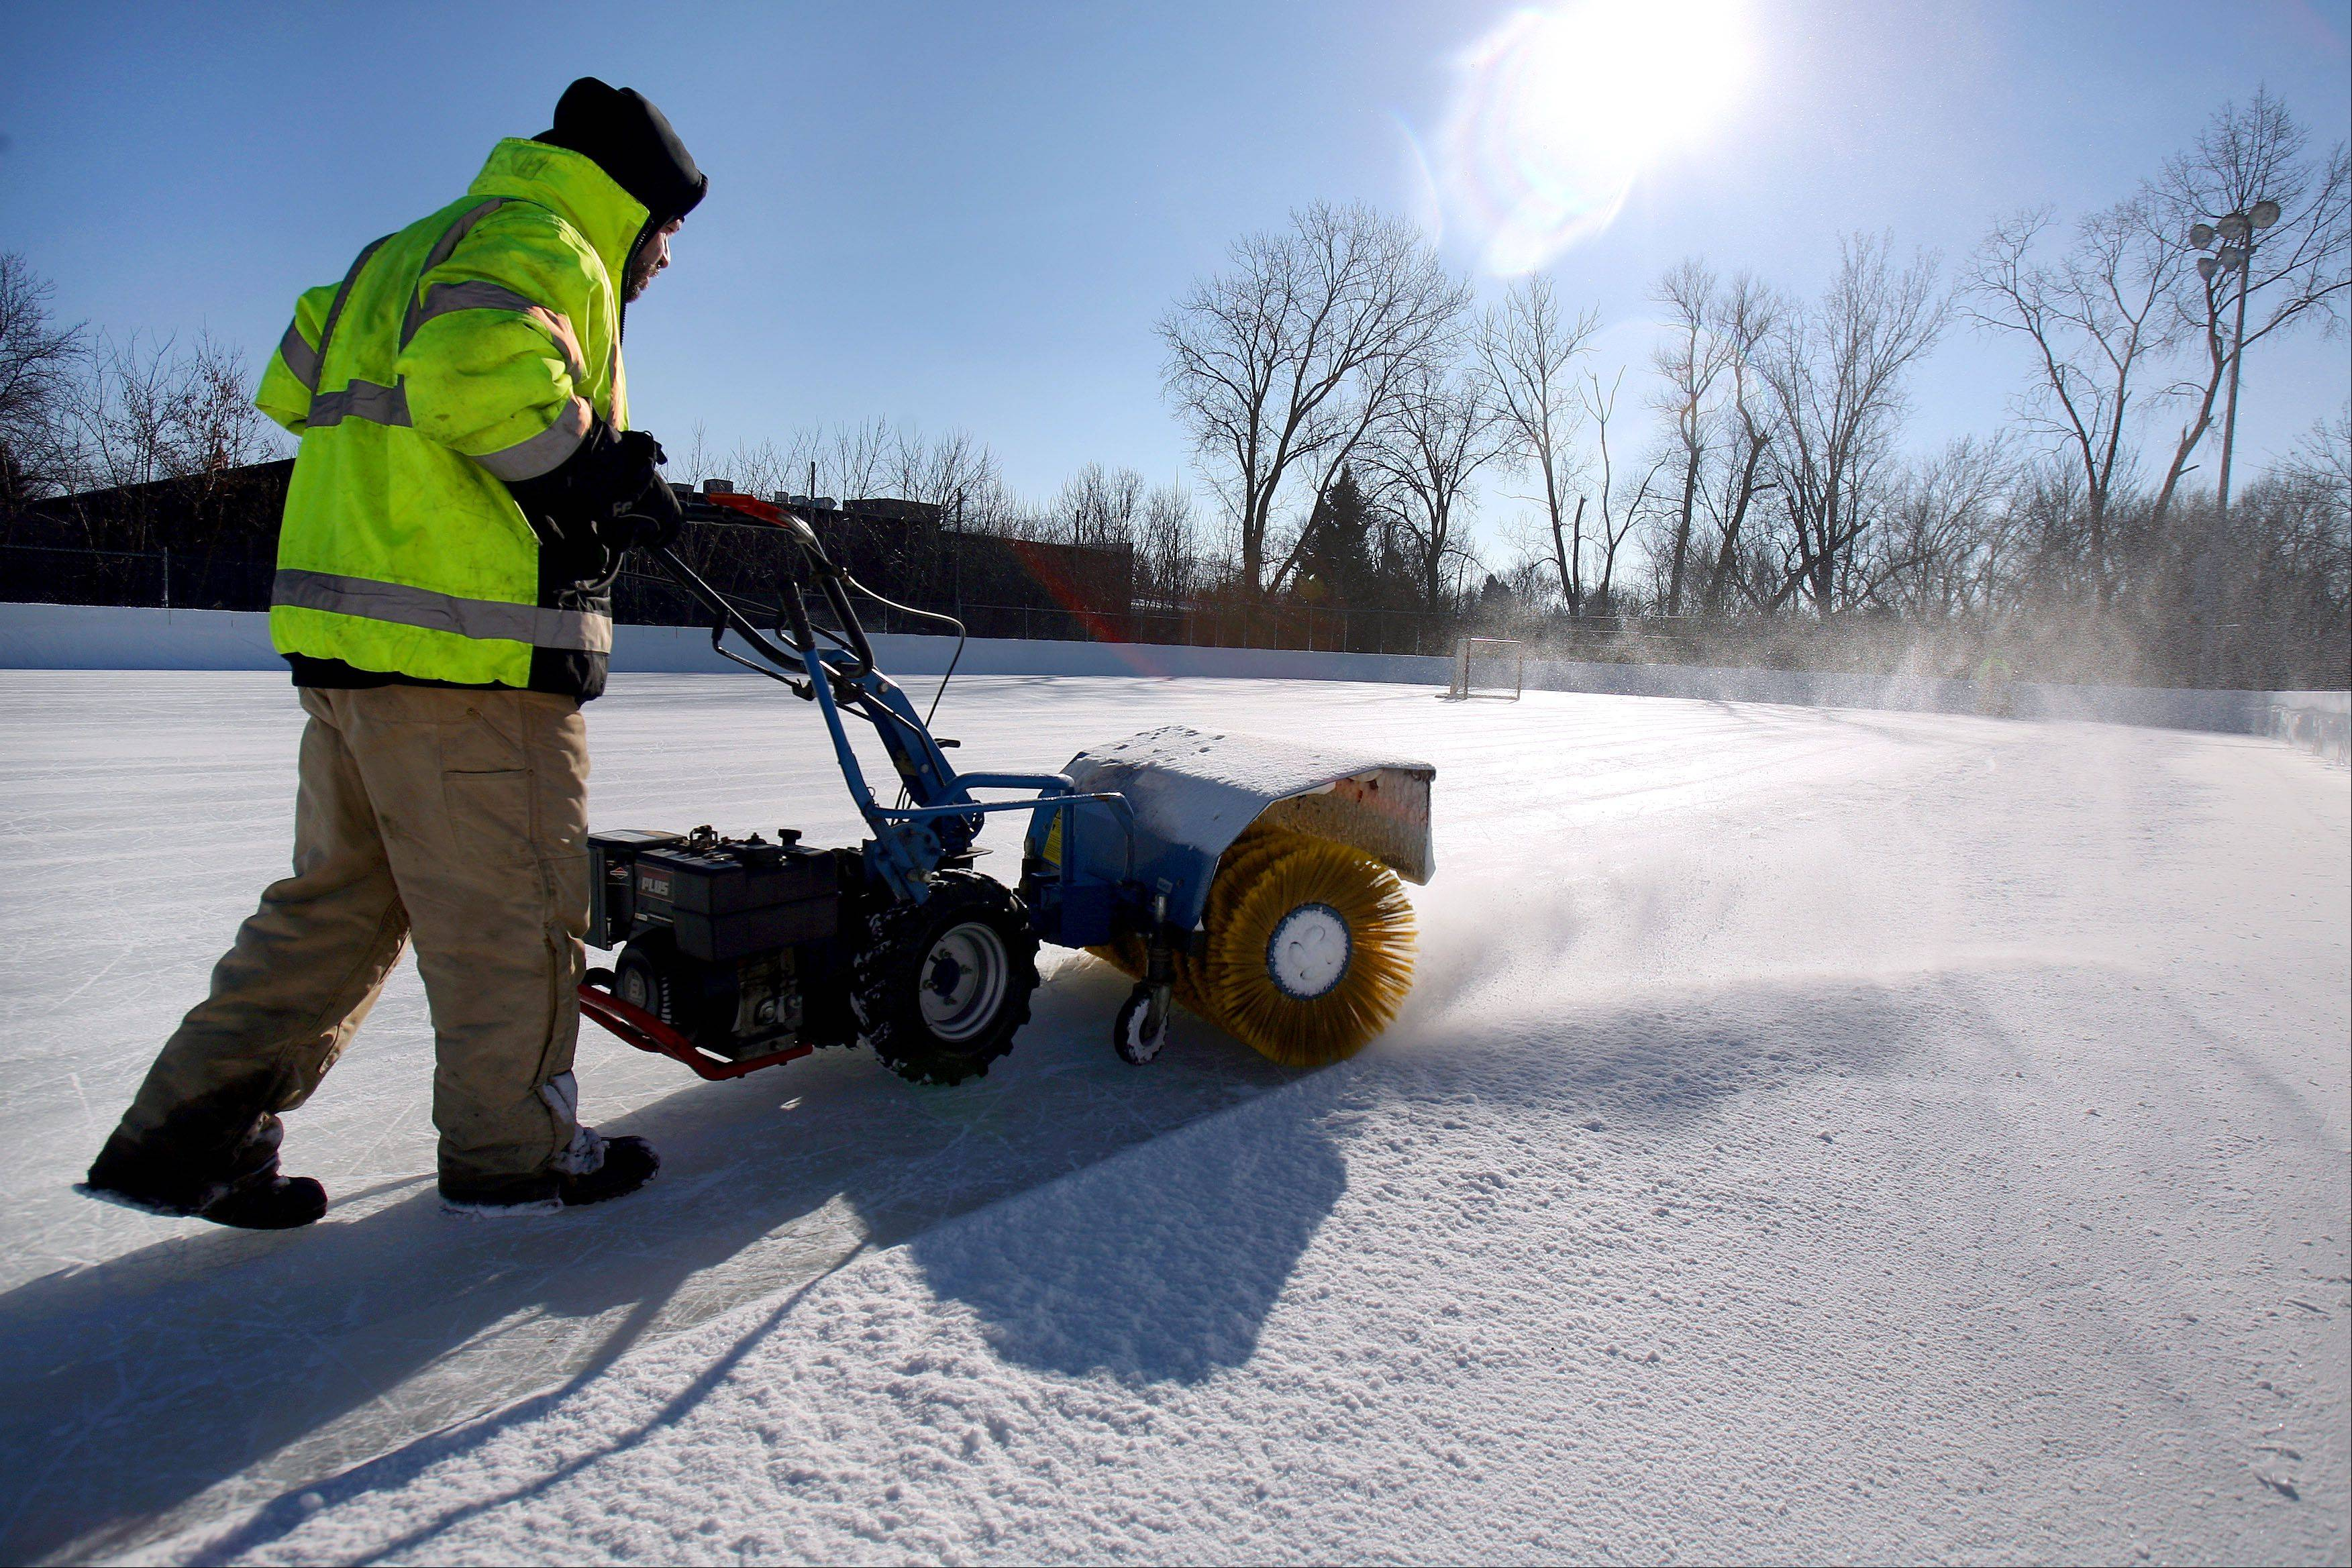 Libertyville Parks Department employee Rosalio Ayala clears the ice rink at Bolander Park in Libertyville earlier this season.